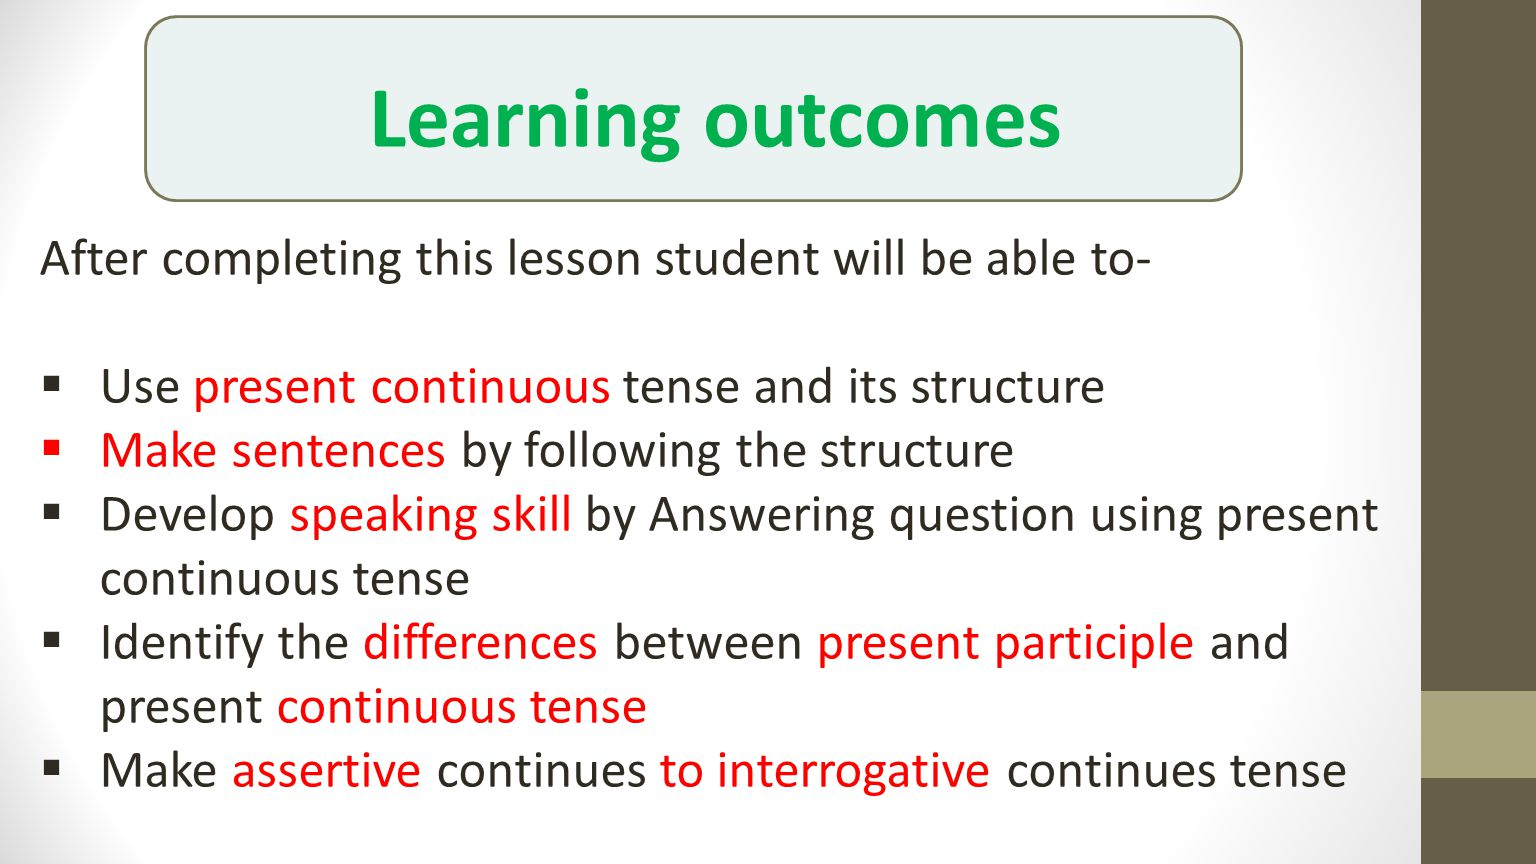 After completing this lesson student will be able to-  Use present continuous tense and its structure  Make sentences by following the structure  Develop speaking skill by Answering question using present continuous tense  Identify the differences between present participle and present continuous tense  Make assertive continues to interrogative continues tense Learning outcomes